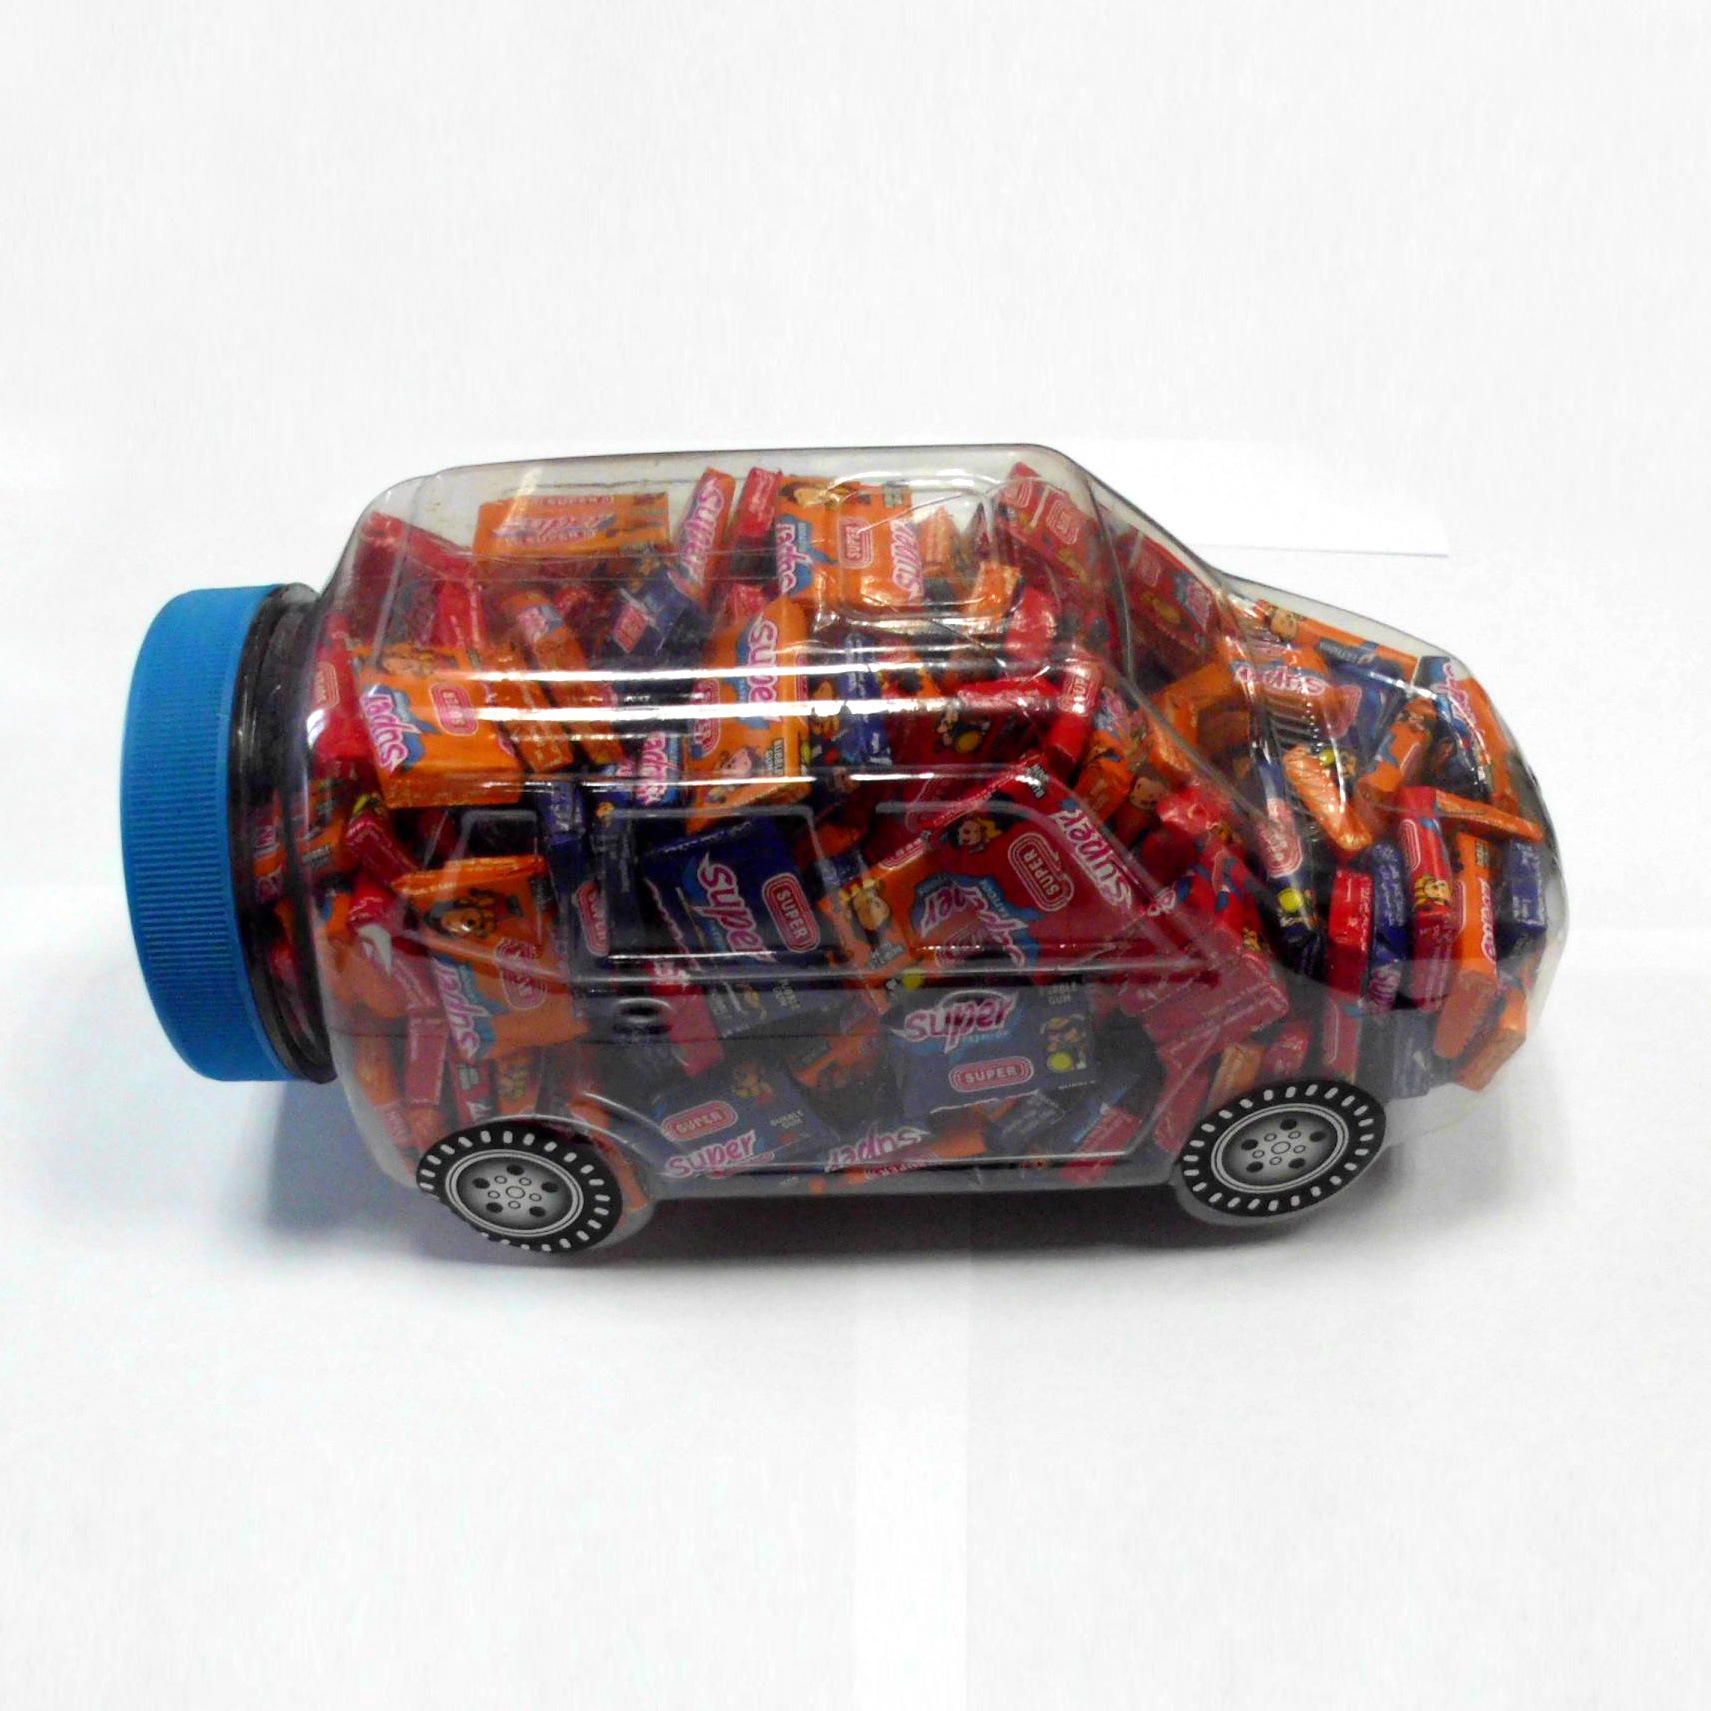 Car Jar Packing 3cm Bubble Gum